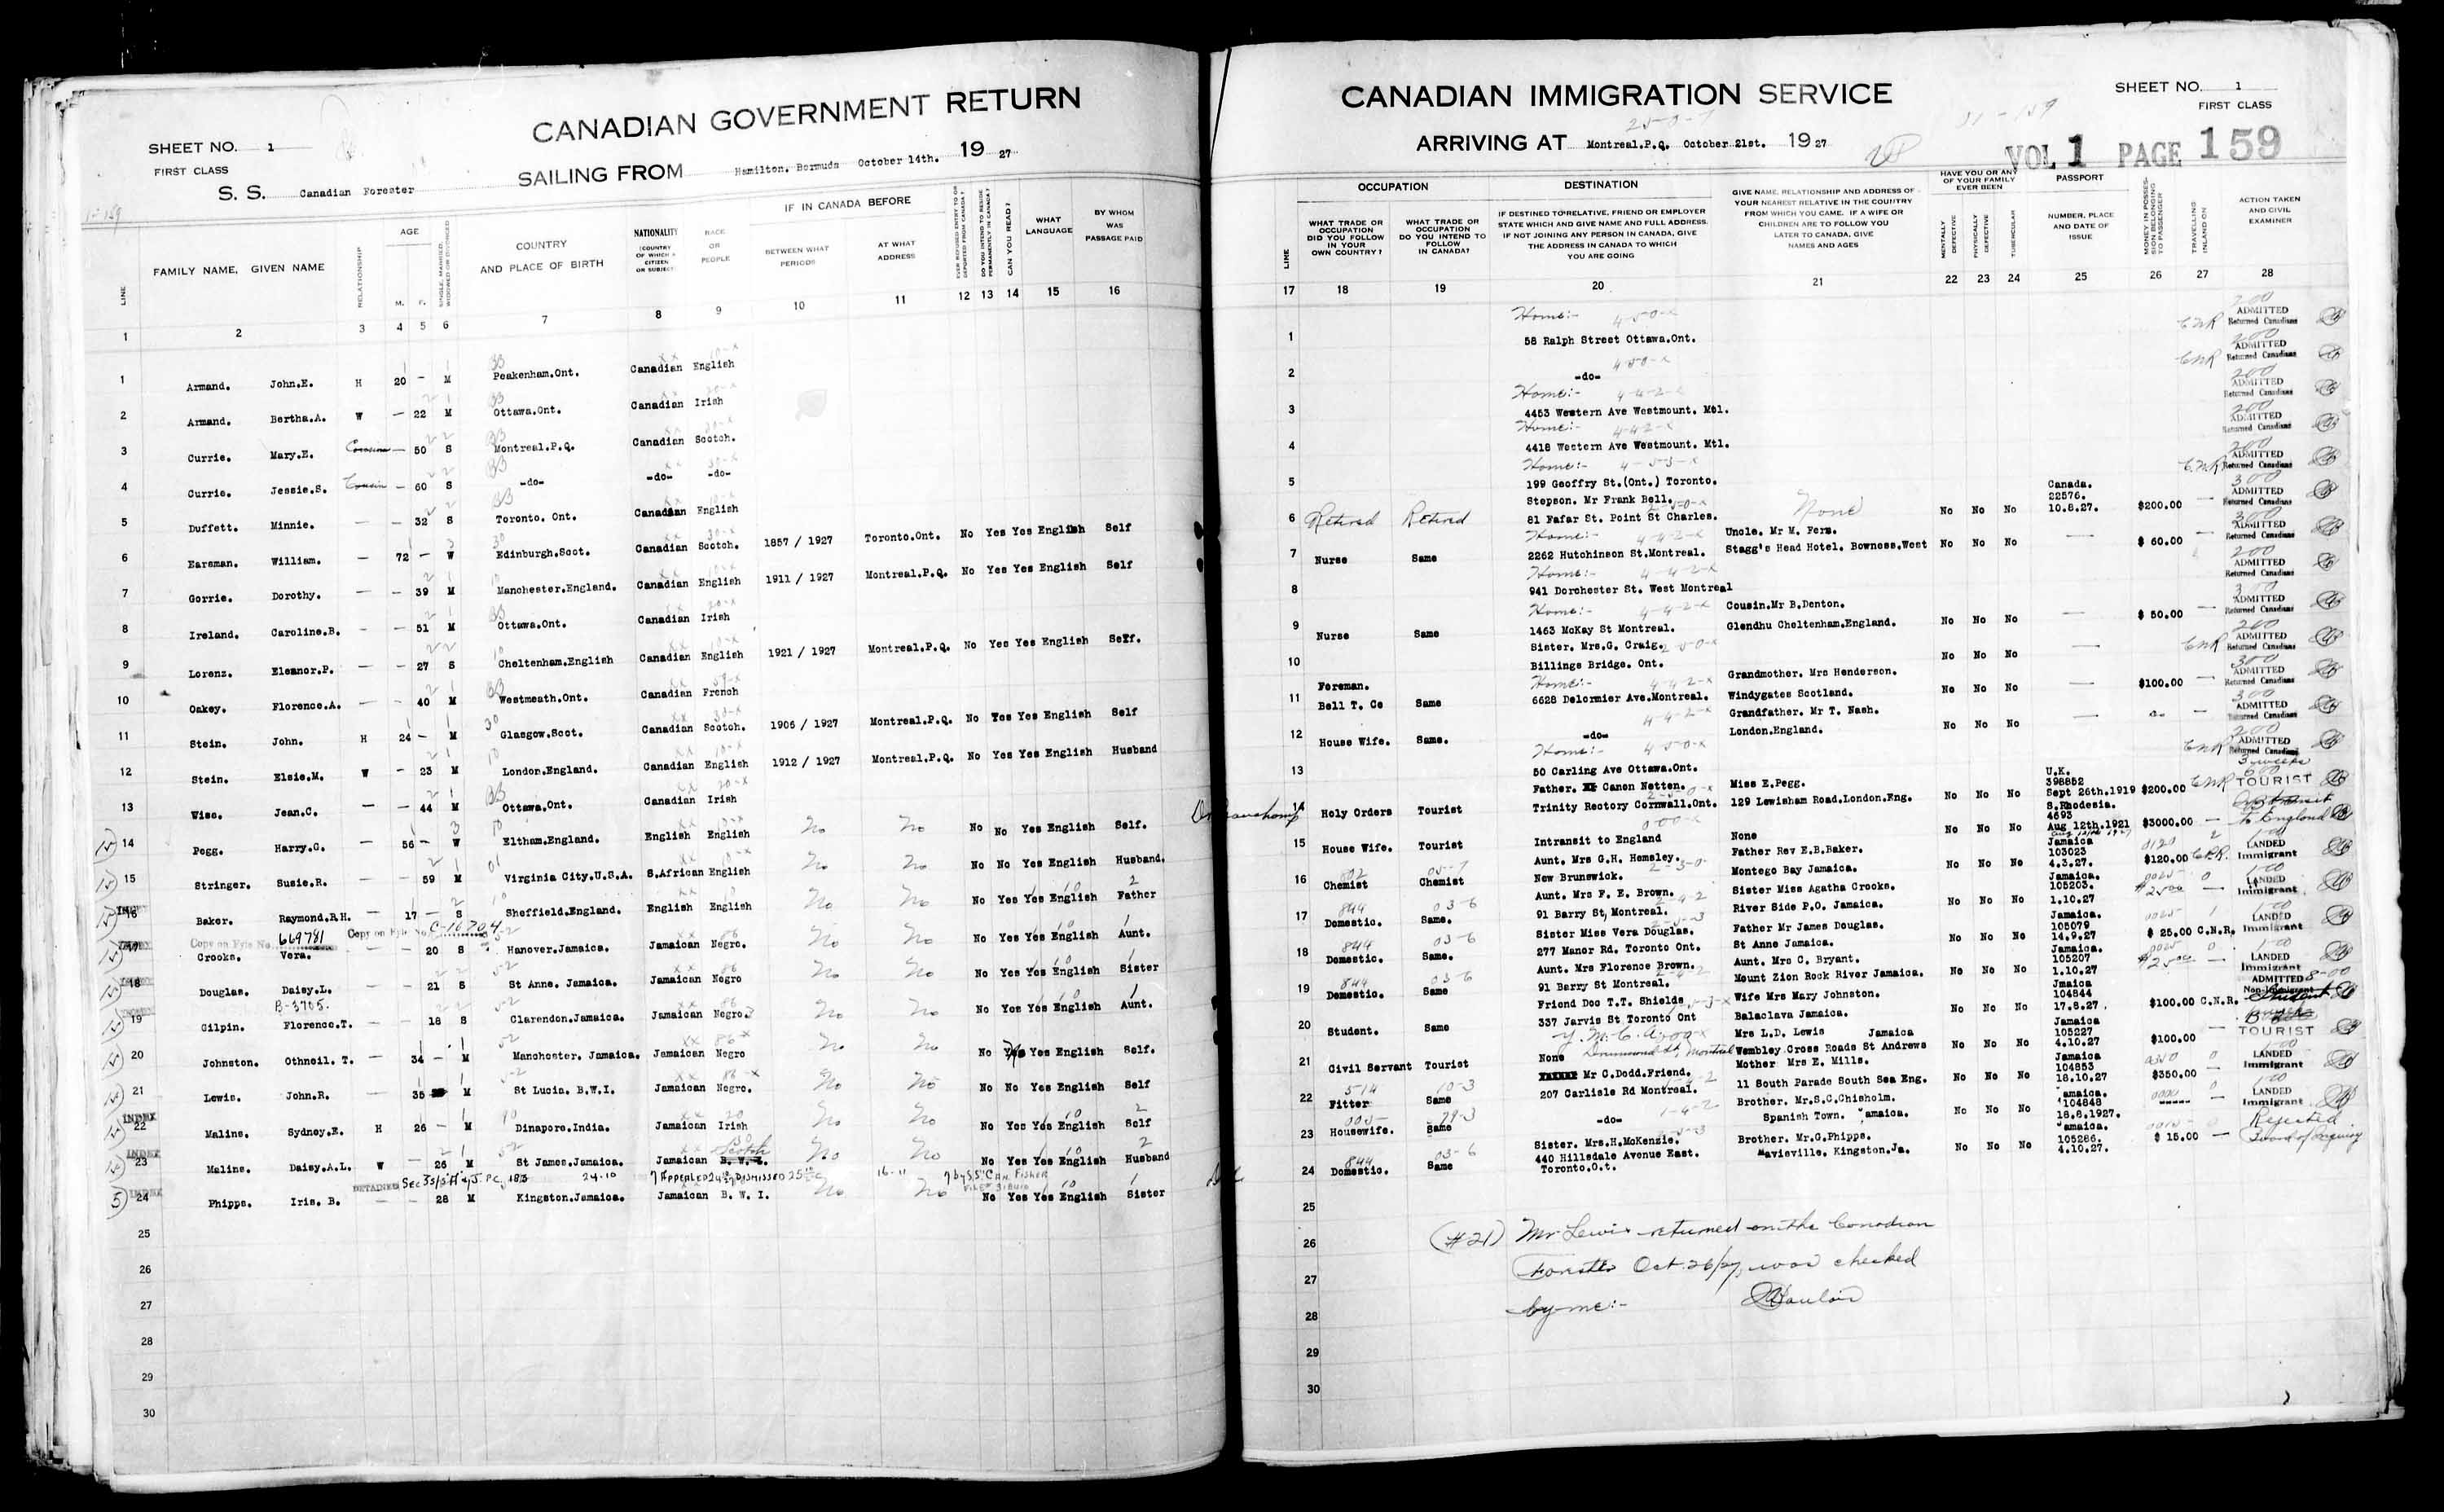 Title: Passenger Lists: Montreal (1925-1935) - Mikan Number: 134839 - Microform: t-14911